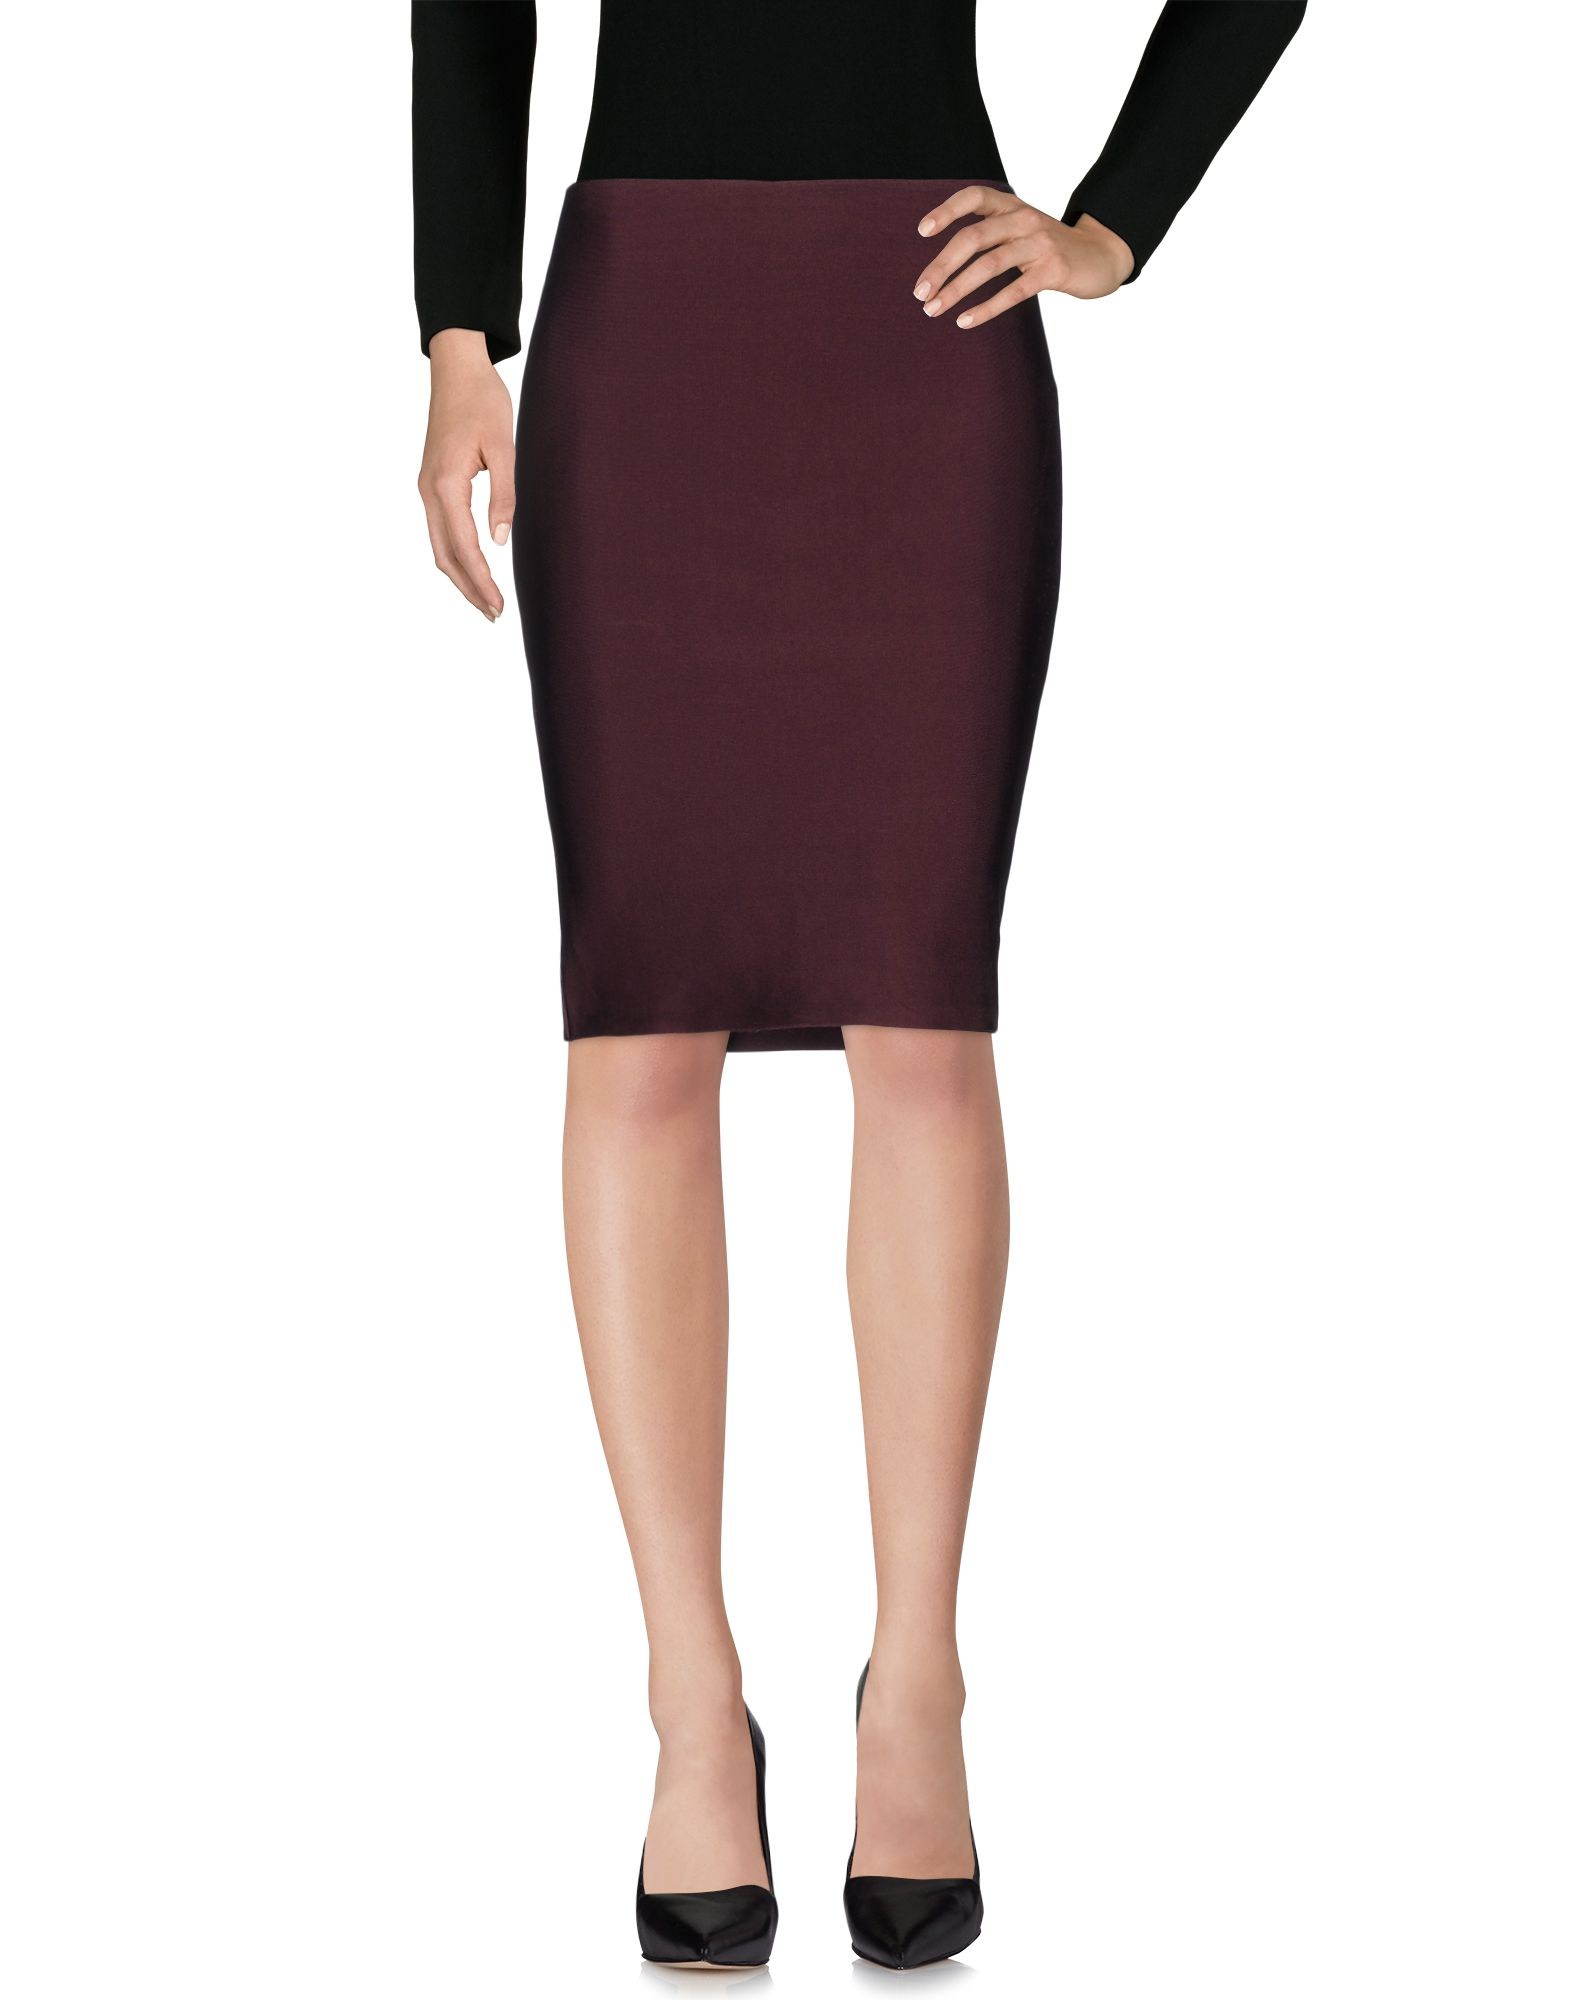 WOW COUTURE Knee Length Skirt in Deep Purple